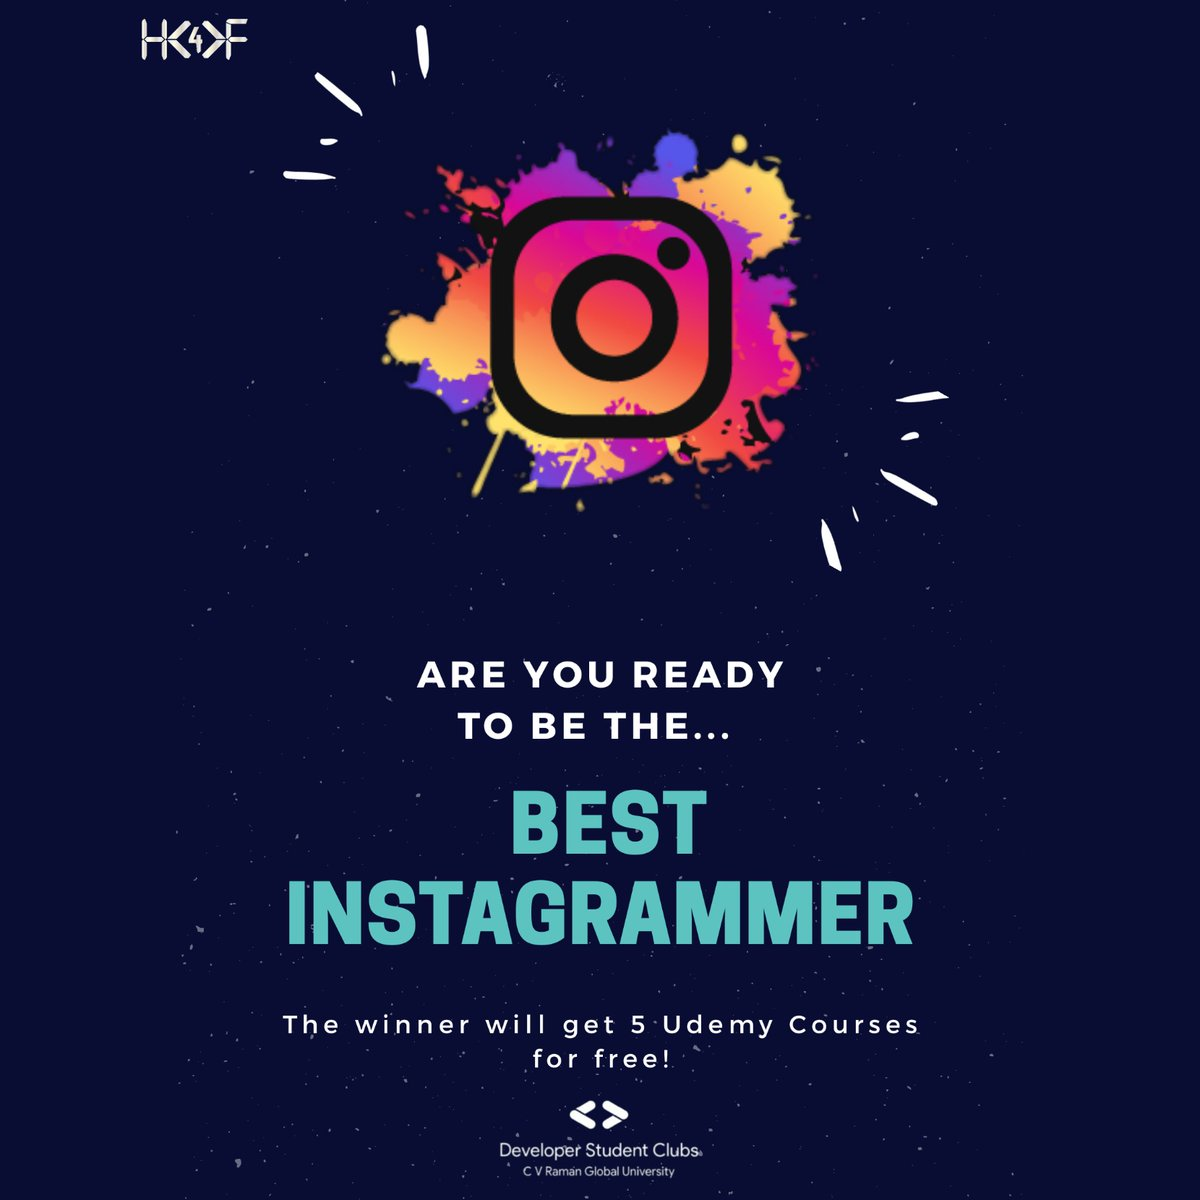 Here we come for the ,Best Instagrammer Competition. First time ever, @DCvrgu, organises best Instagrammer Competition,join with us and win prizes. https://t.co/ns2n4Awrc8 #dsc  #dsccvrgu  #udemy  #hack  #hackforfun  #googledevelopers  #google  #developerstudentclubs  #developer https://t.co/YsILBAJ7Bs